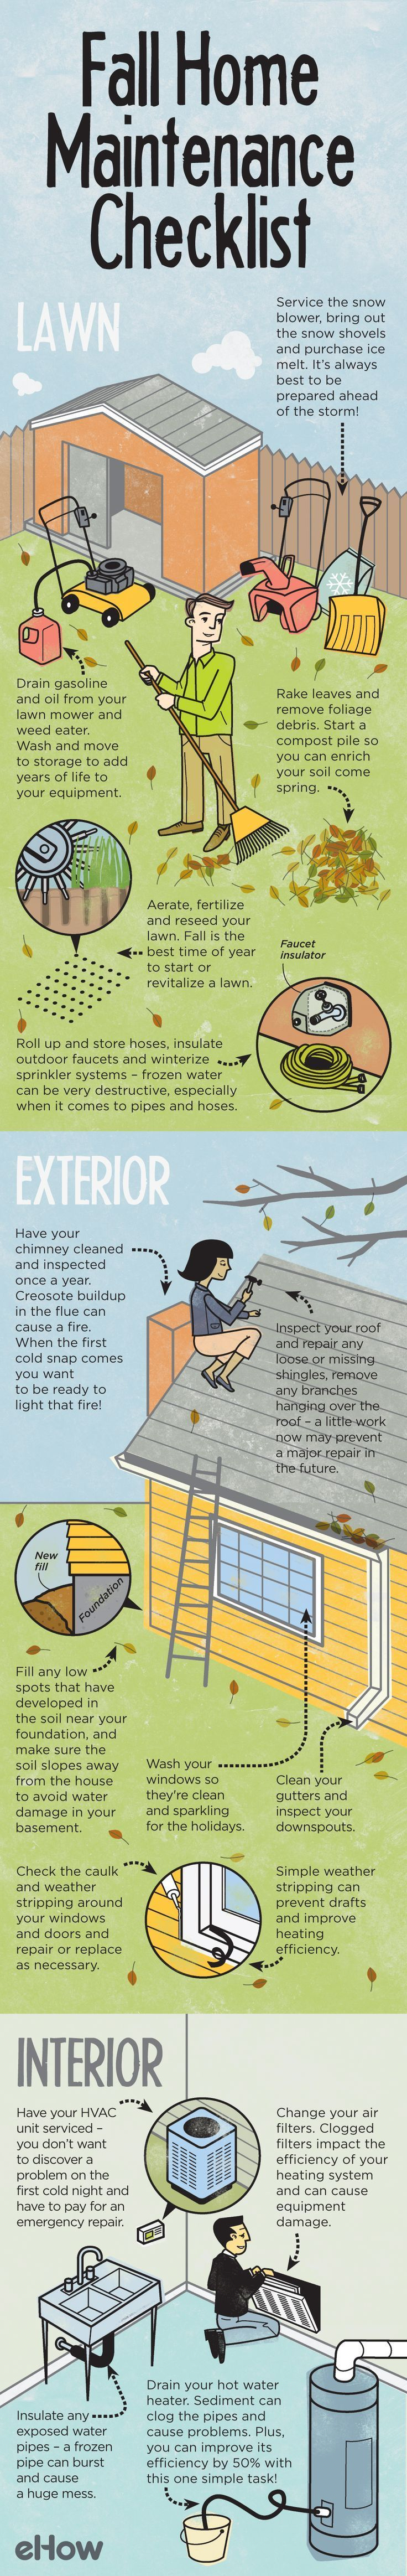 fall home maintenance checklist winter house and organizations